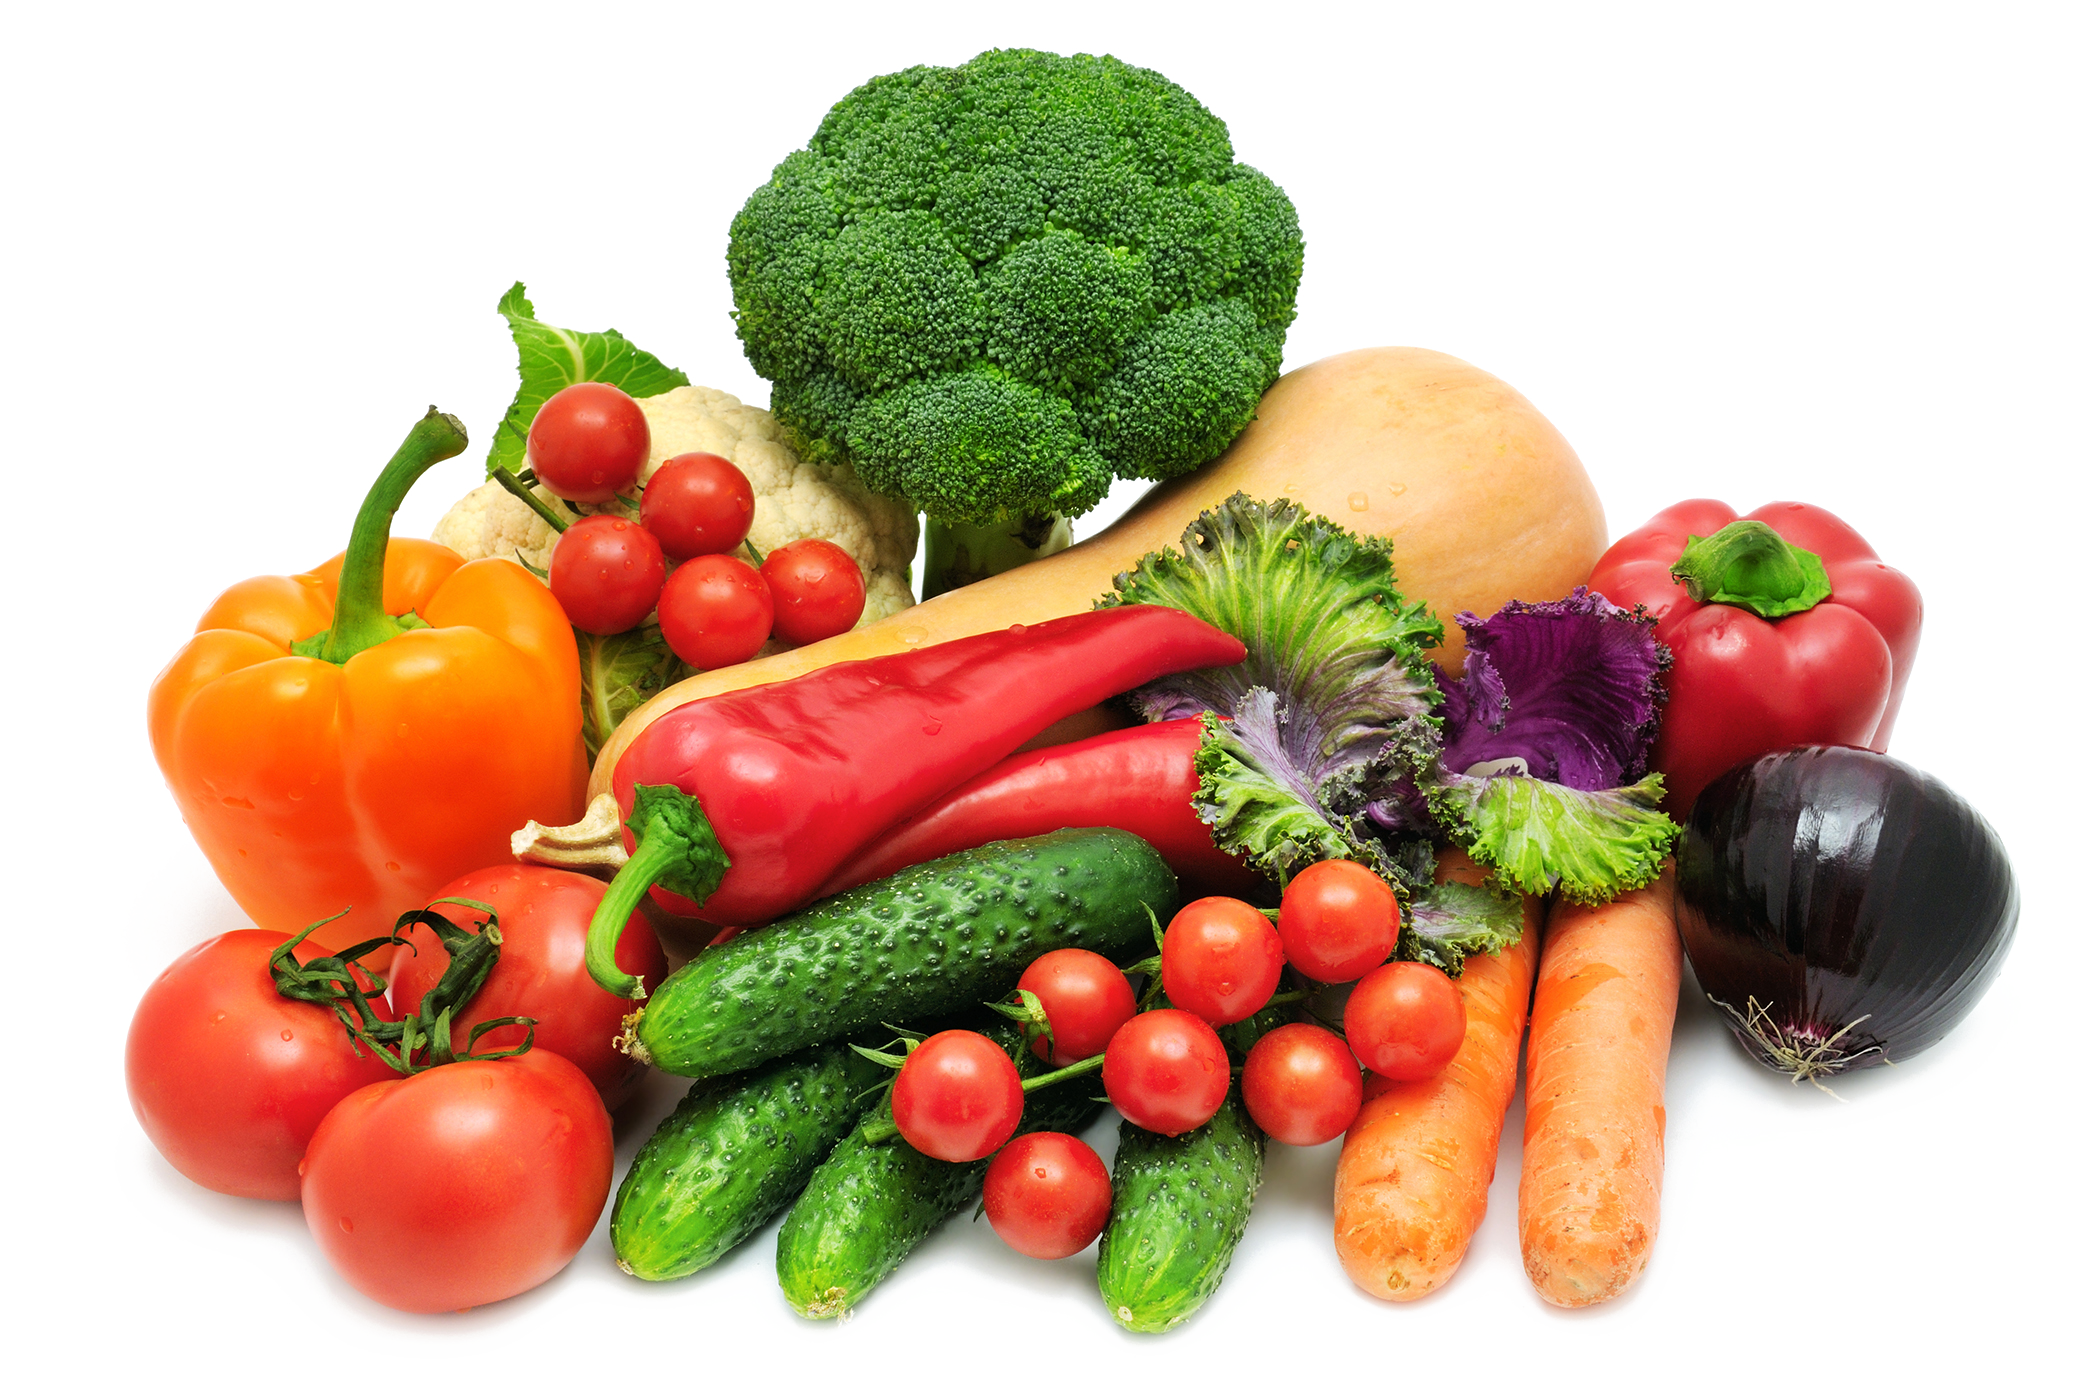 Vegetables images png. Vegetable transparent arts